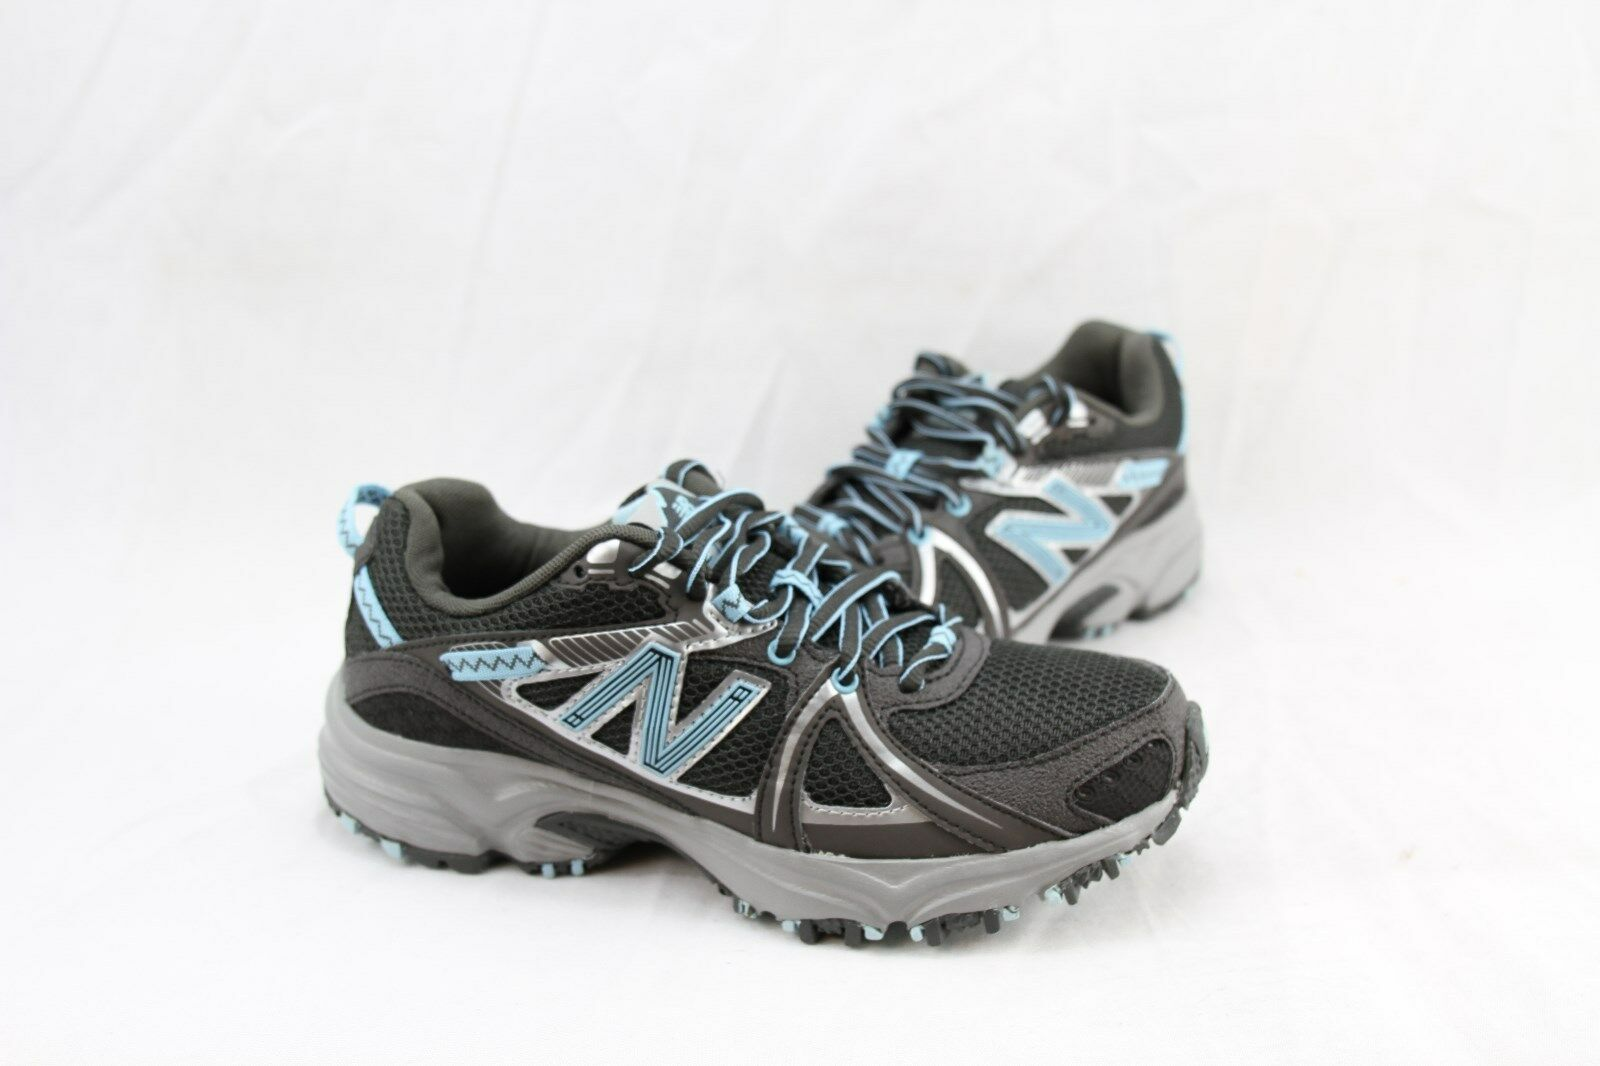 NEW BALANCE TRAIL RUNNING COURSE EN SENTIER WT510BB SIZES: 6 - 7.5